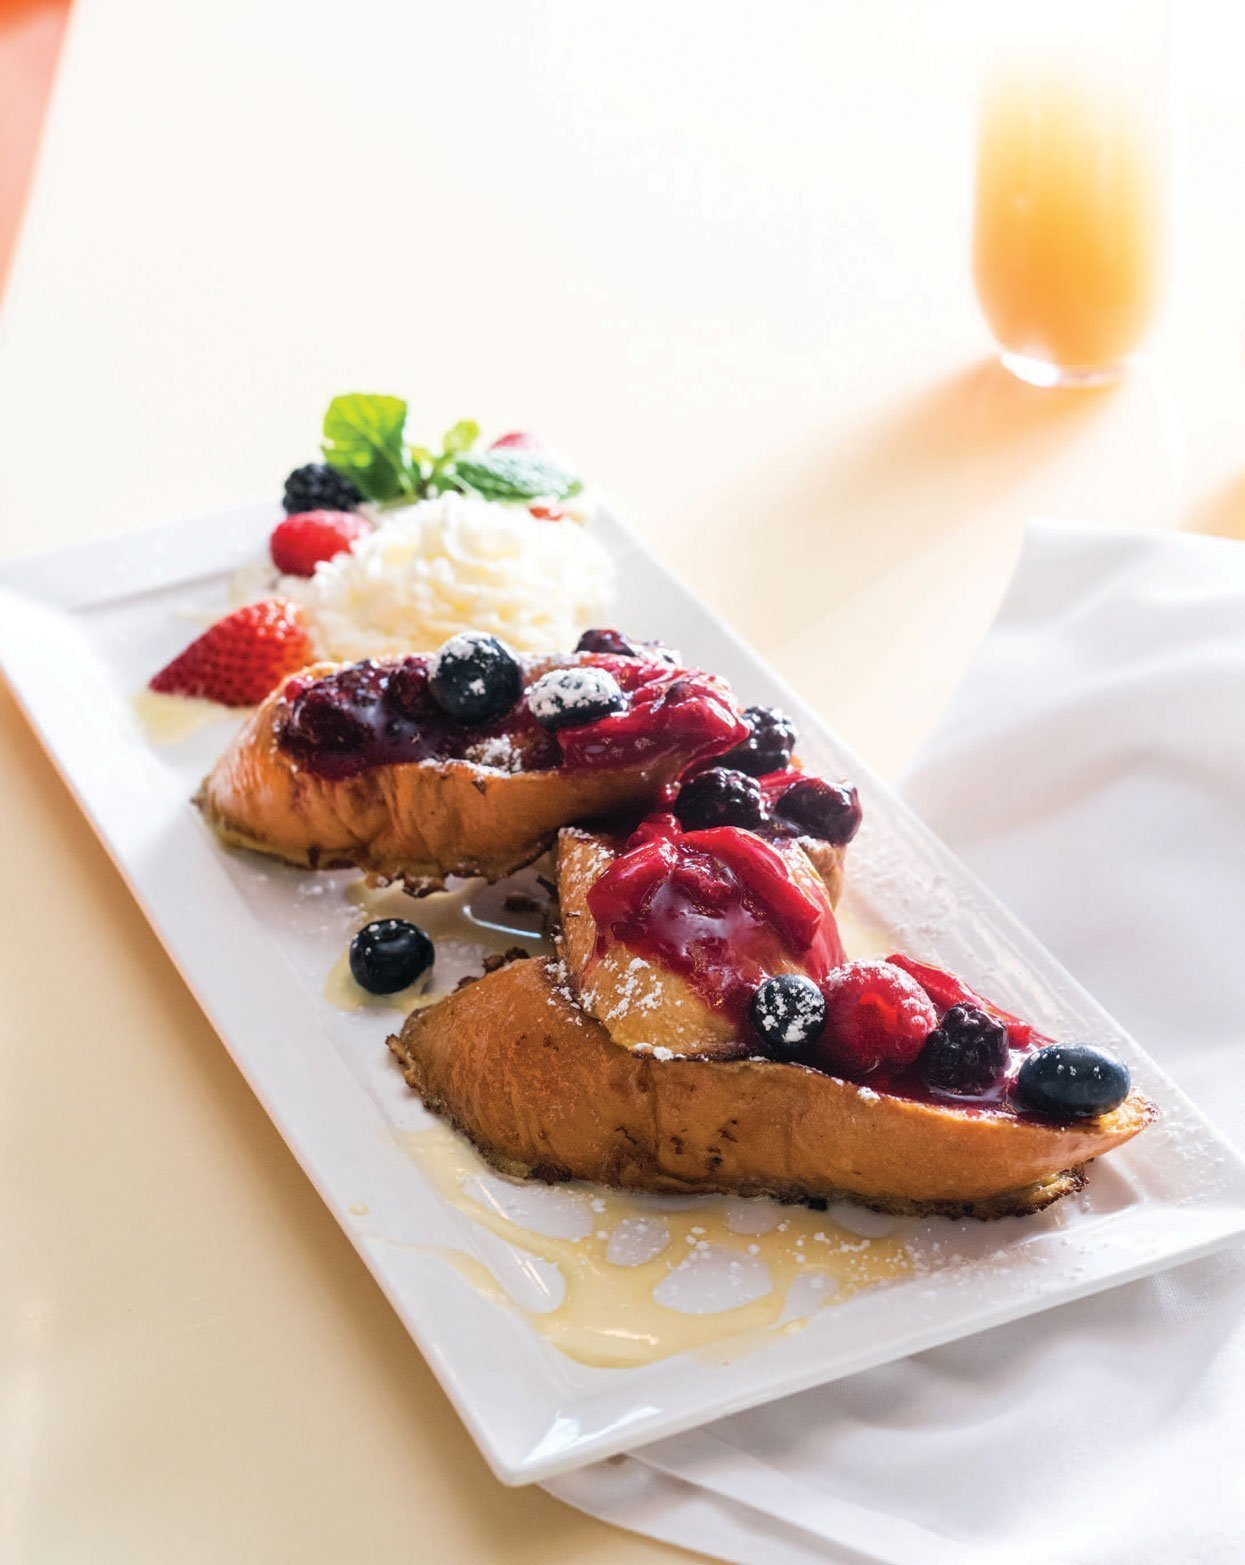 French toast with fruit on a plate.